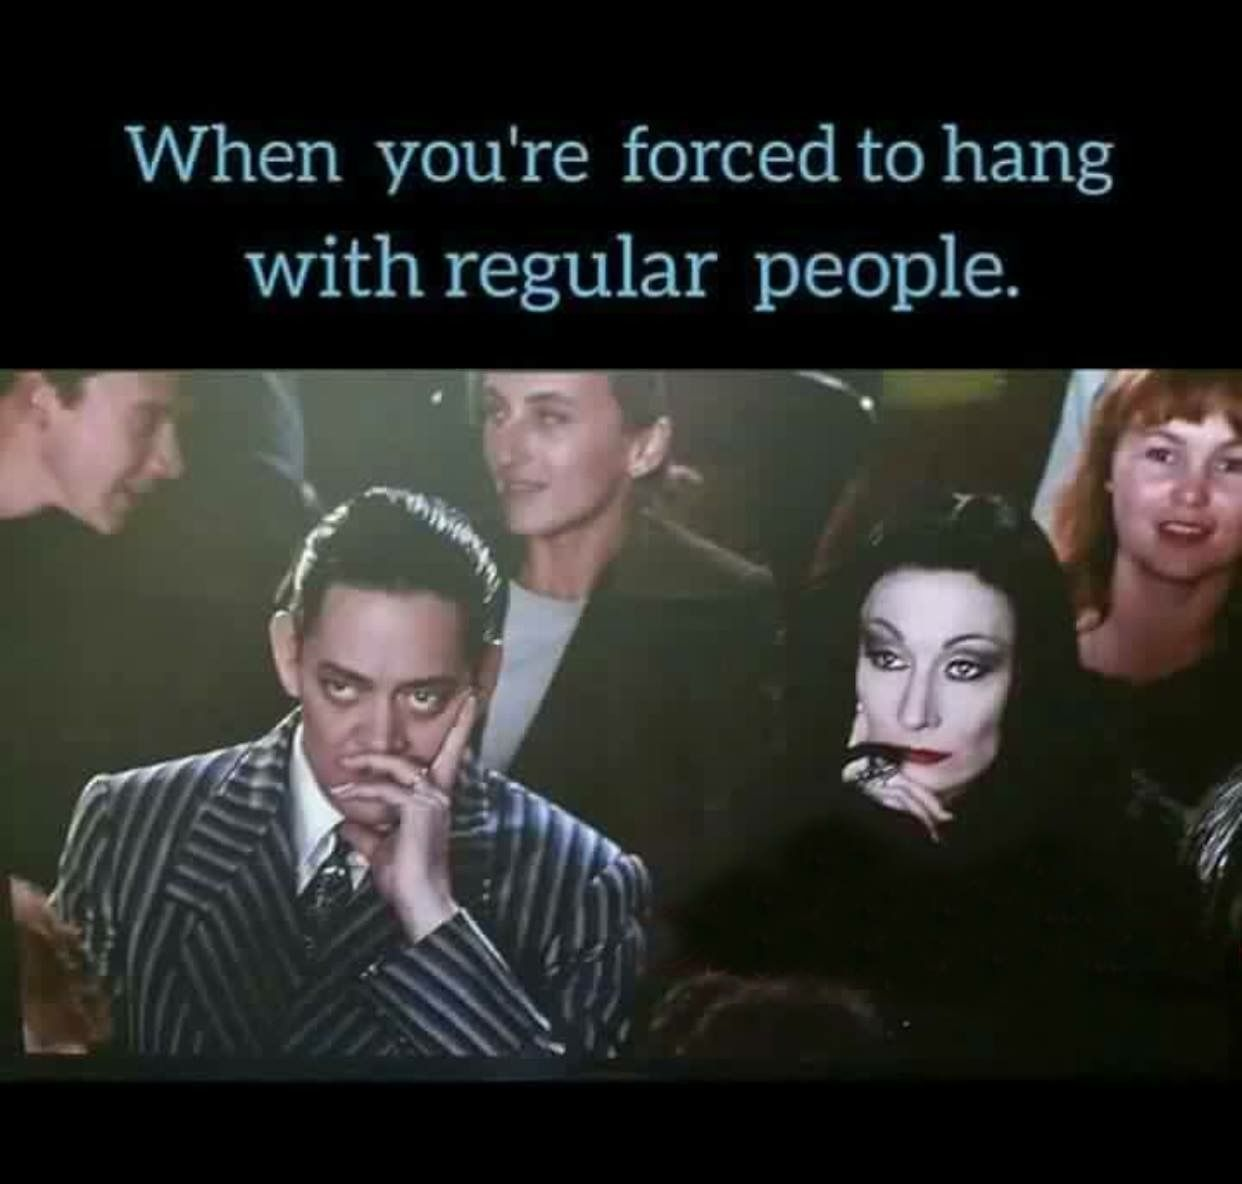 I know your pain addams family